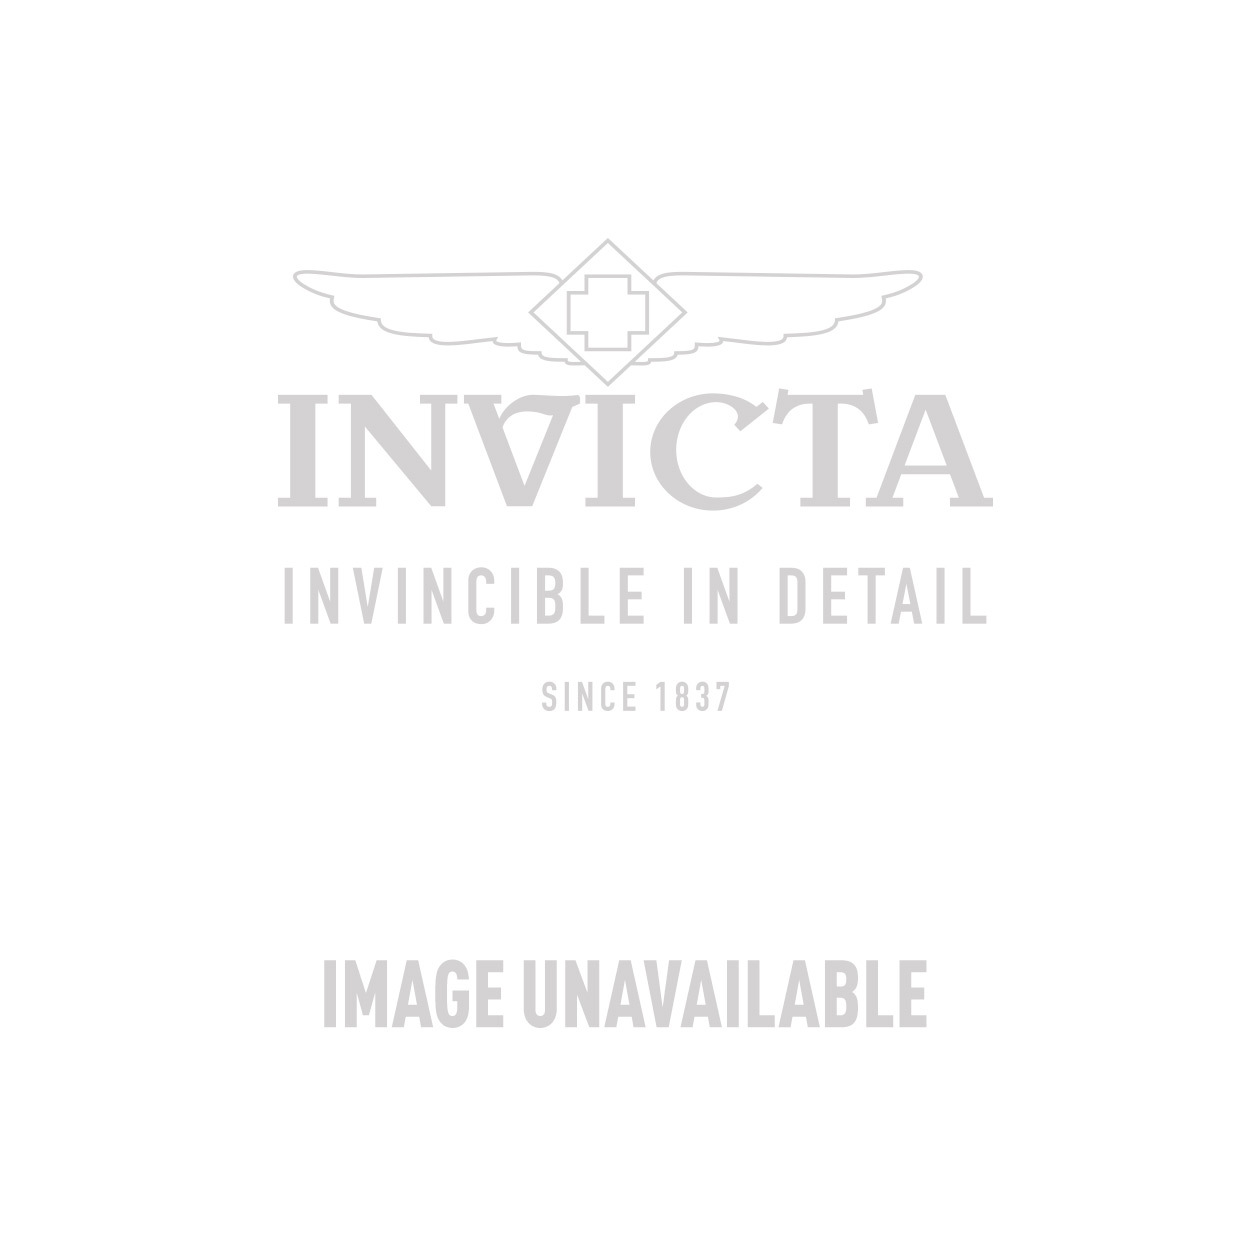 Invicta Aviator Quartz Watch - Stainless Steel case with Steel, Black tone Polyurethane band - Model 1234